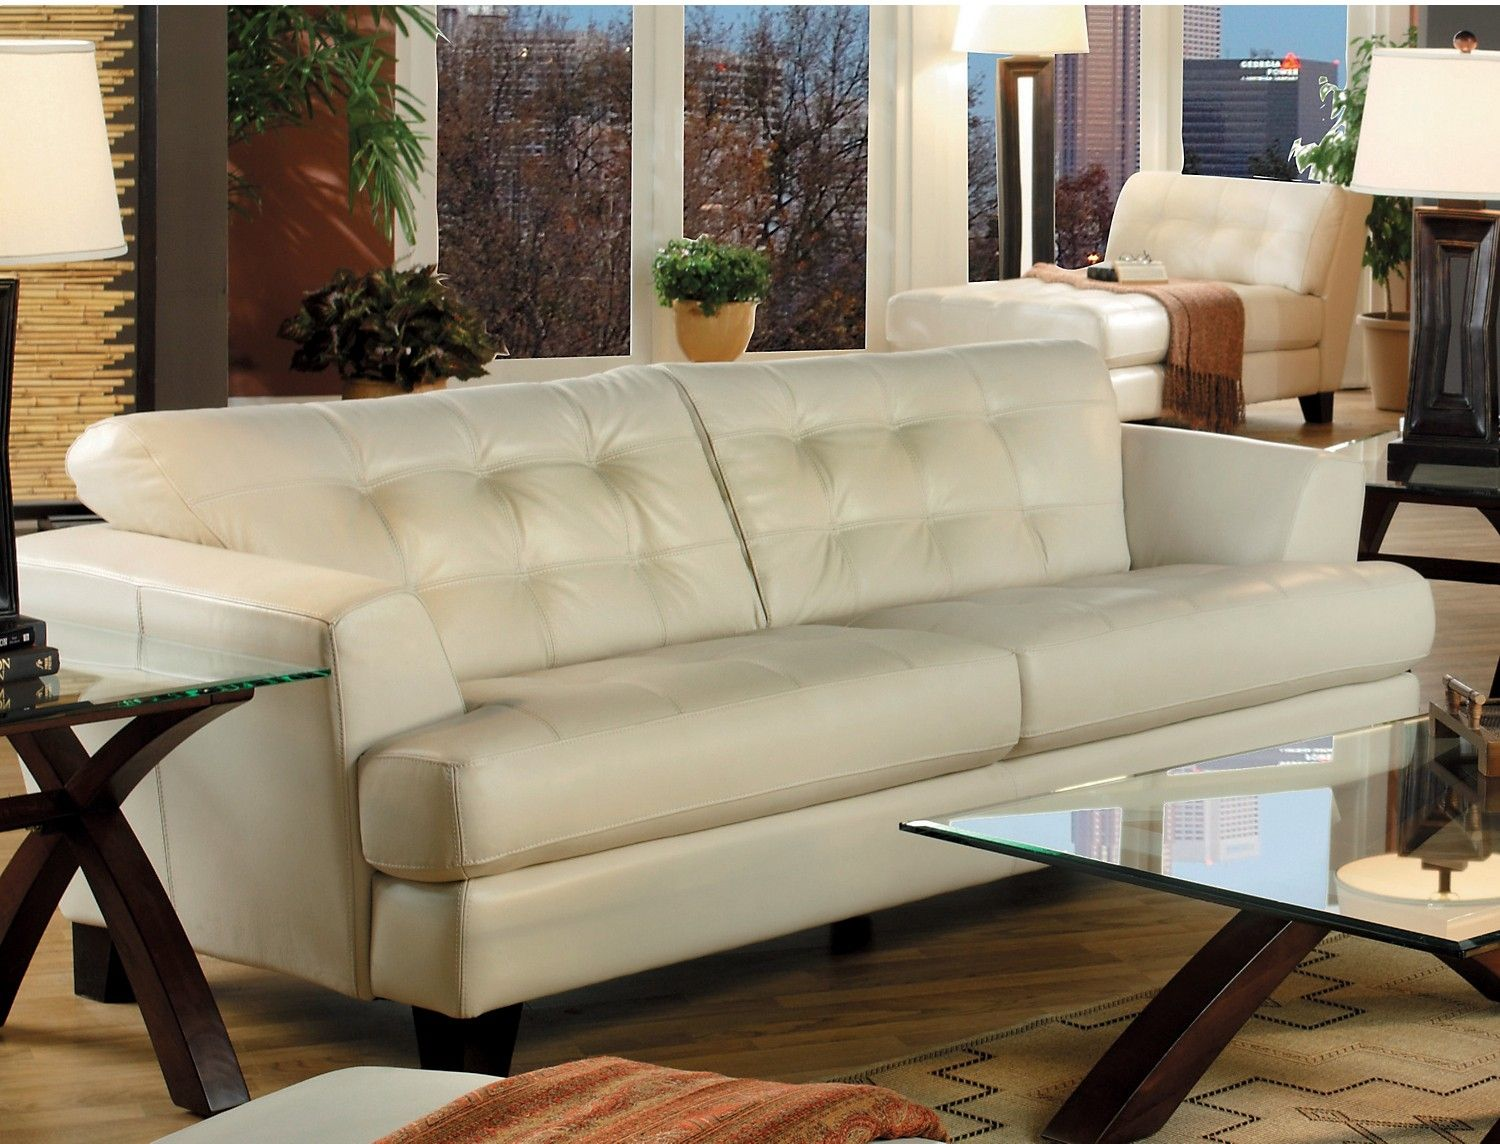 Sofa The Brick Brilliant Main Flooravenue Genuine Leather Sofa  Ivory  The Brick  Home . Design Ideas